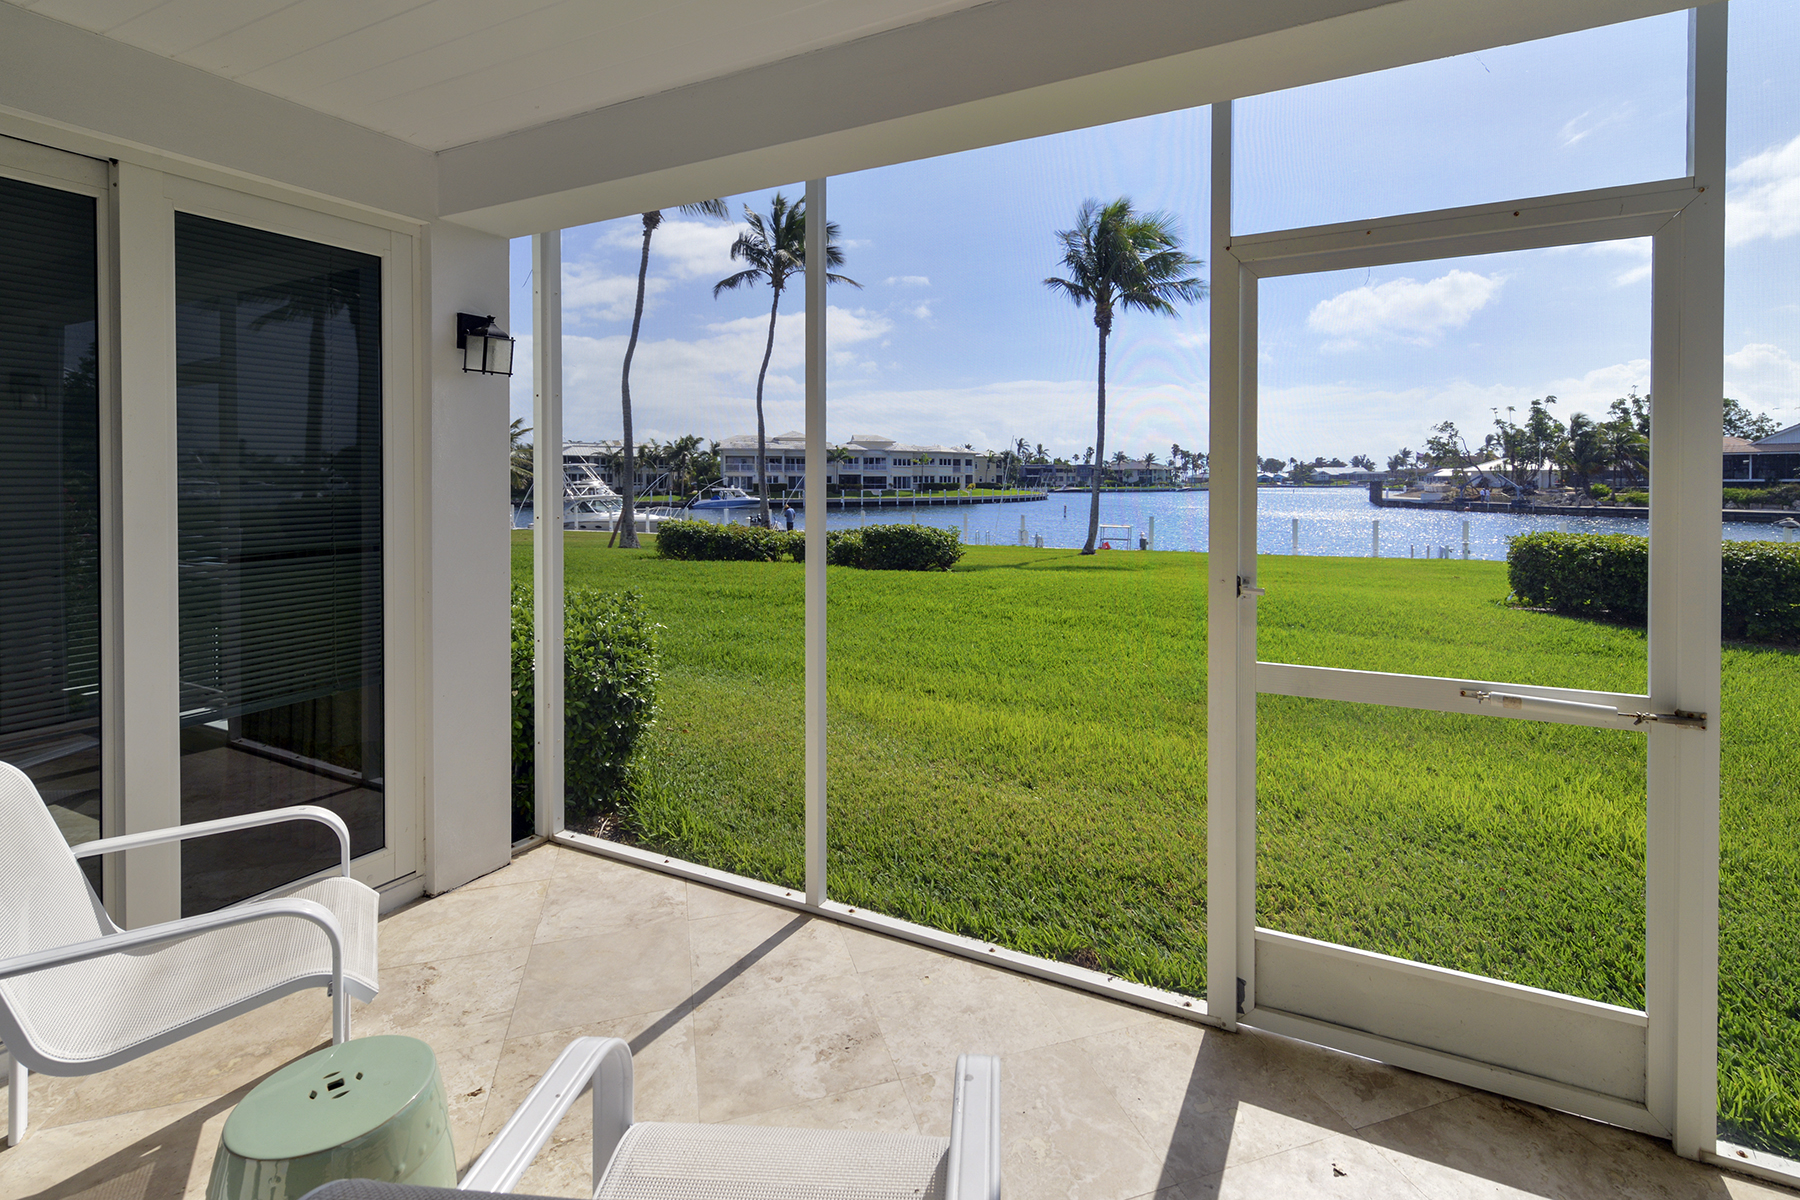 コンドミニアム のために 売買 アット Spacious Waterfront Getaway at Ocean Reef 45 Anchor Drive, Unit A, Ocean Reef Community, Key Largo, フロリダ, 33037 アメリカ合衆国